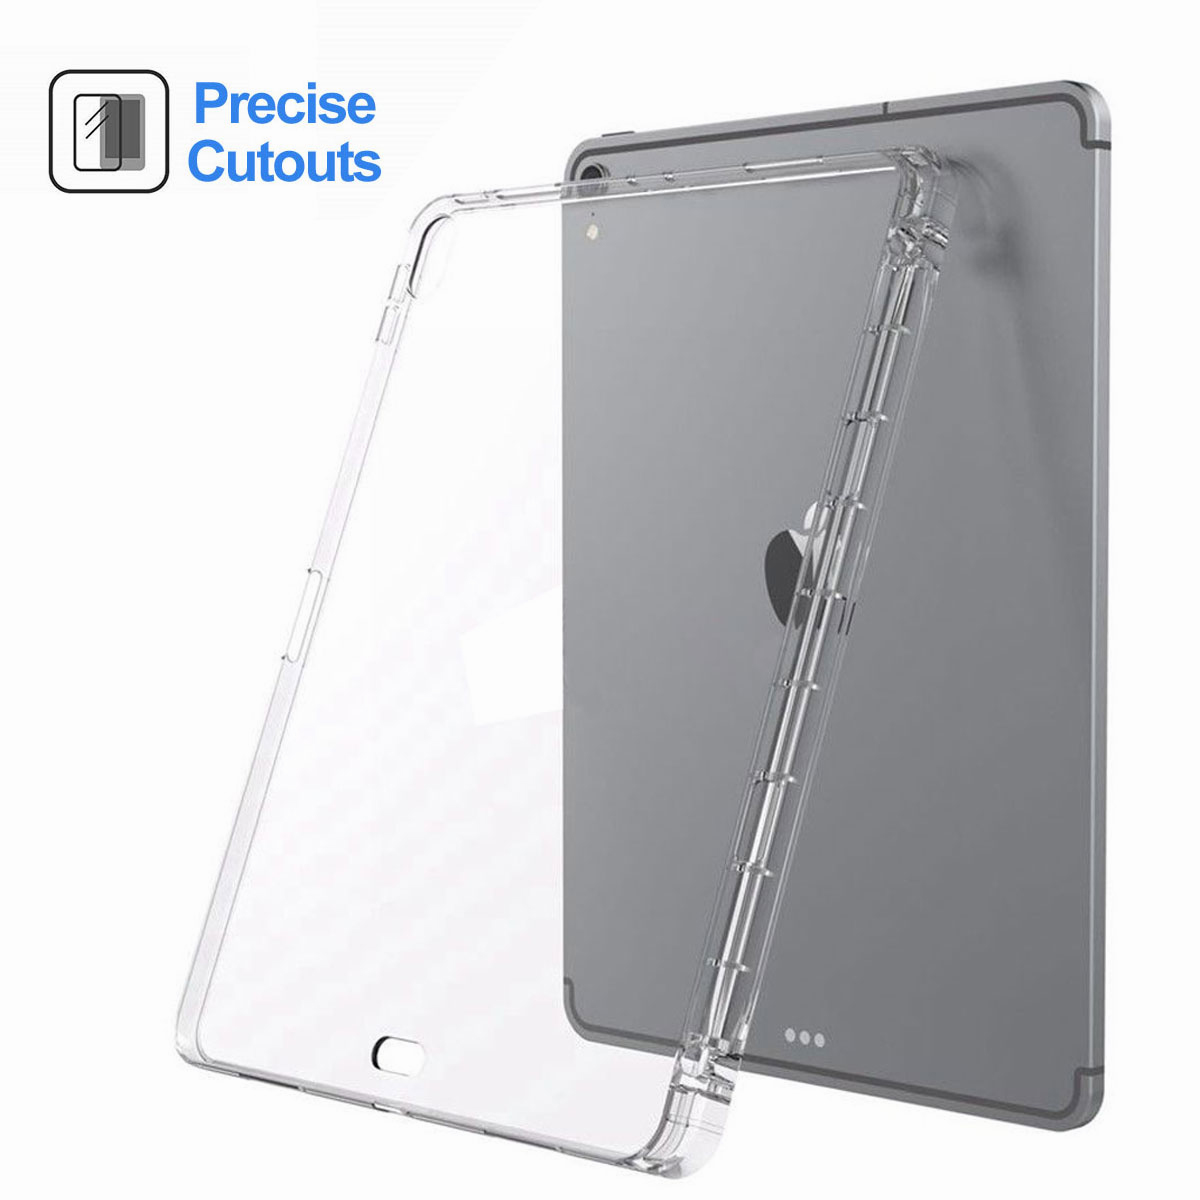 Transparent-Clear-Case-For-New-iPad-Pro-11-Inch-2018-Slim-Protective-Case-Cover thumbnail 18